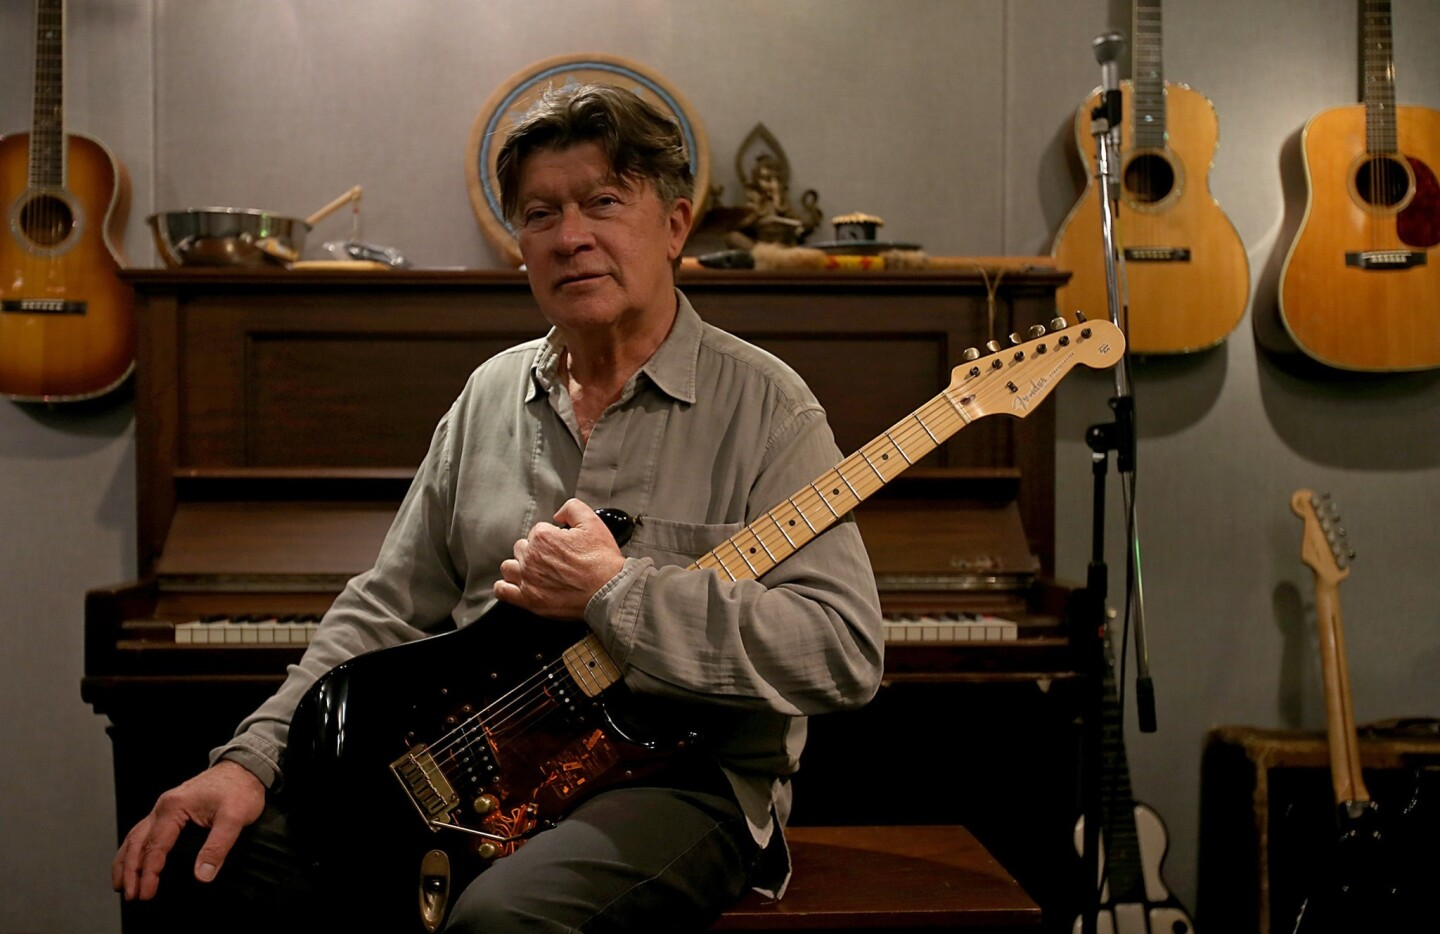 Robbie Robertson, lead guitarist for the Band, holds a recent incarnation of the Fender Stratocaster electric guitar, a music industry standard that is celebrating its 60th anniversary this year.